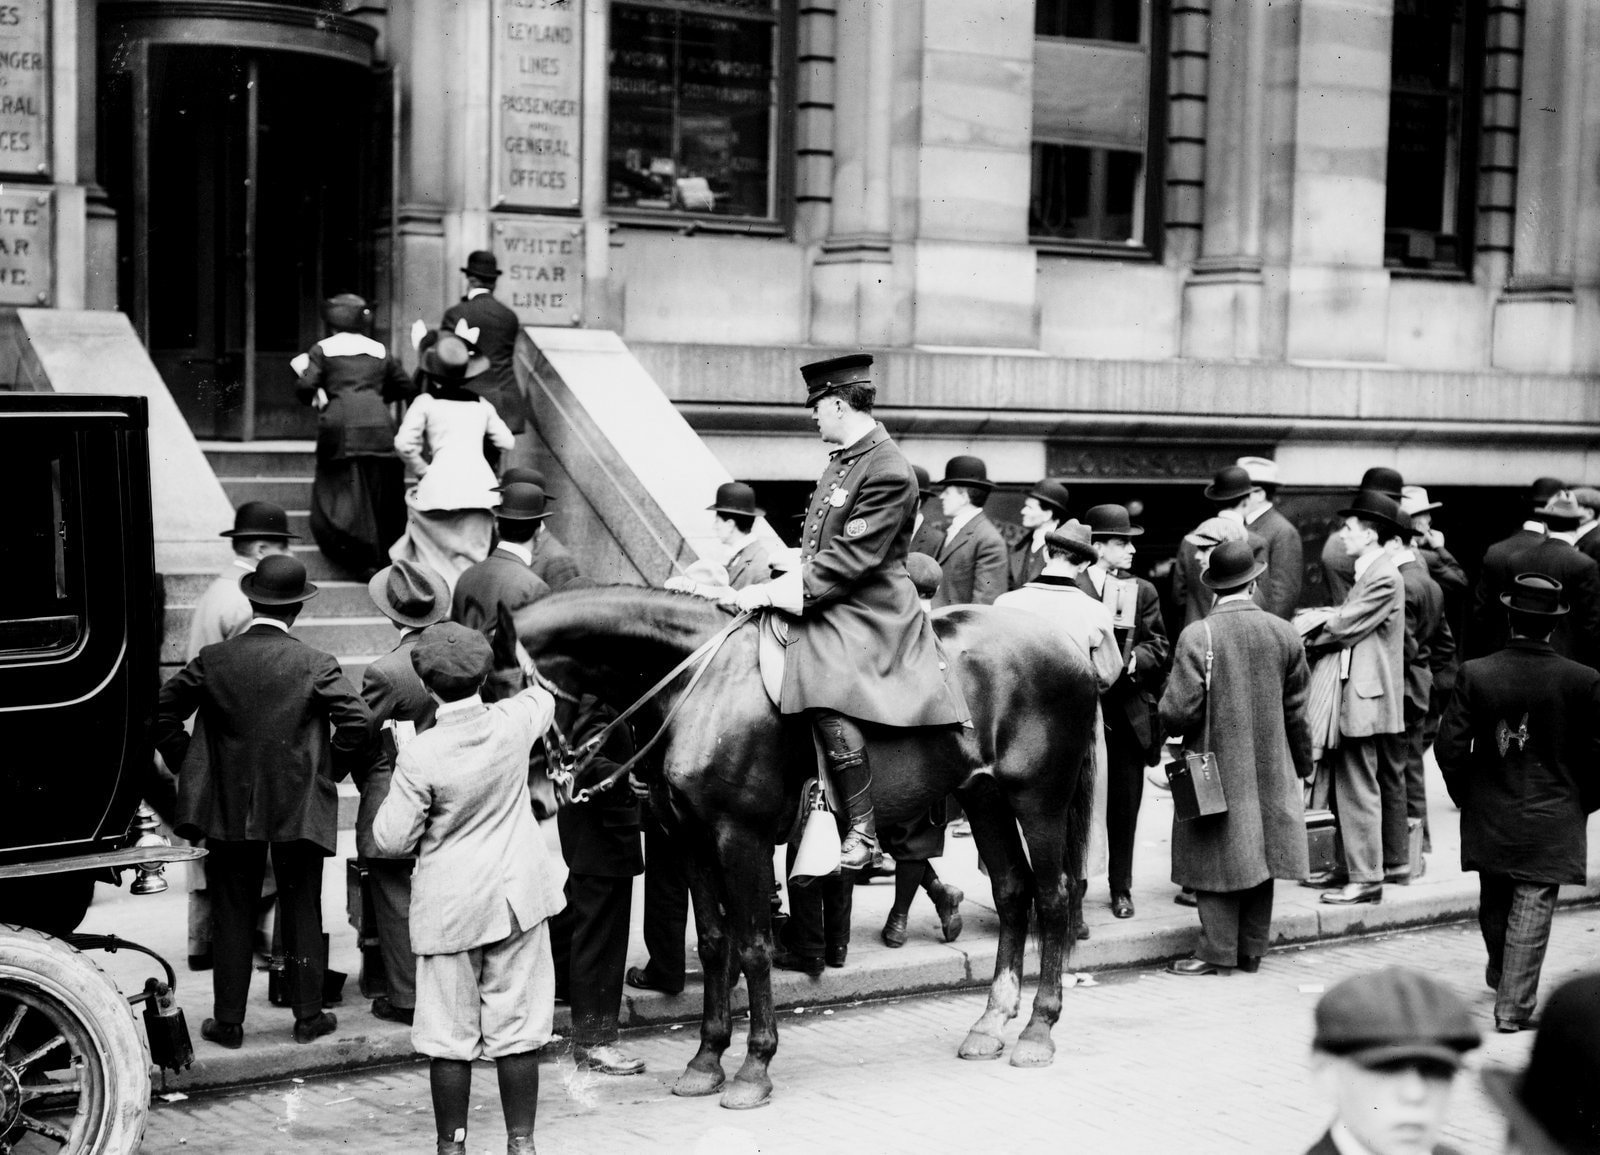 Crowd in front of White Star offices - Titanic 1912